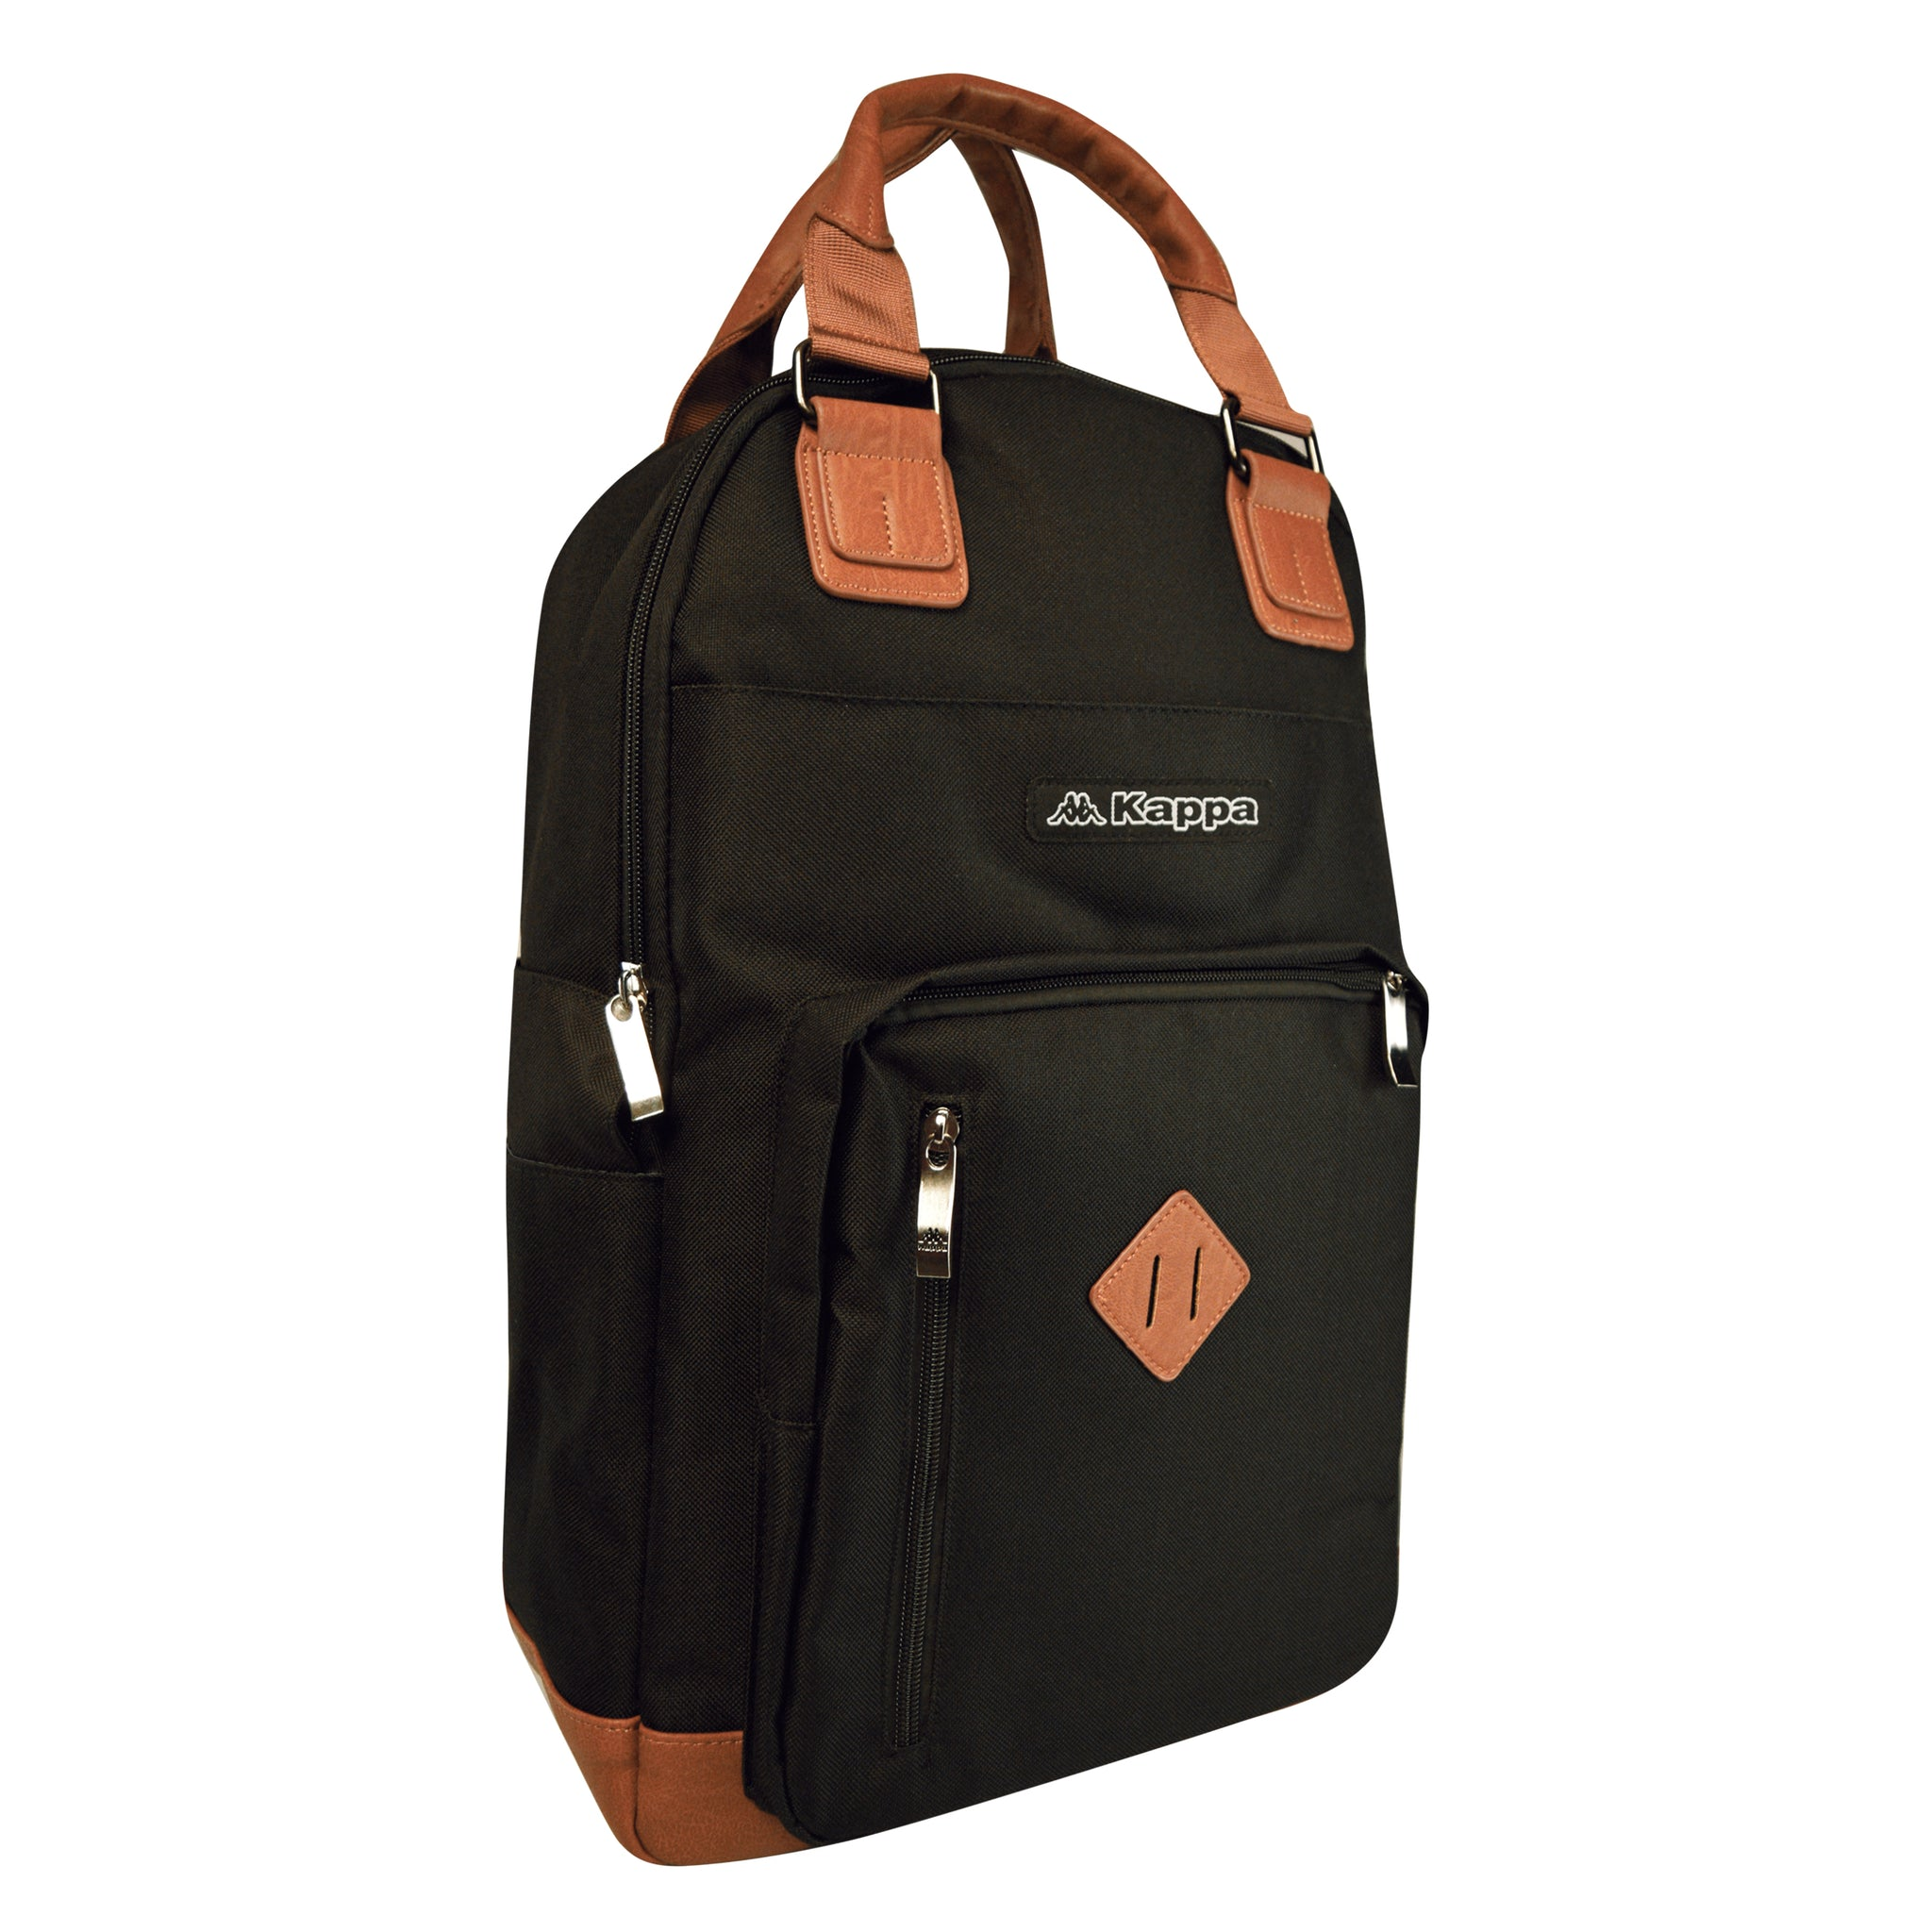 BackPack Lifestyle MMG003-2